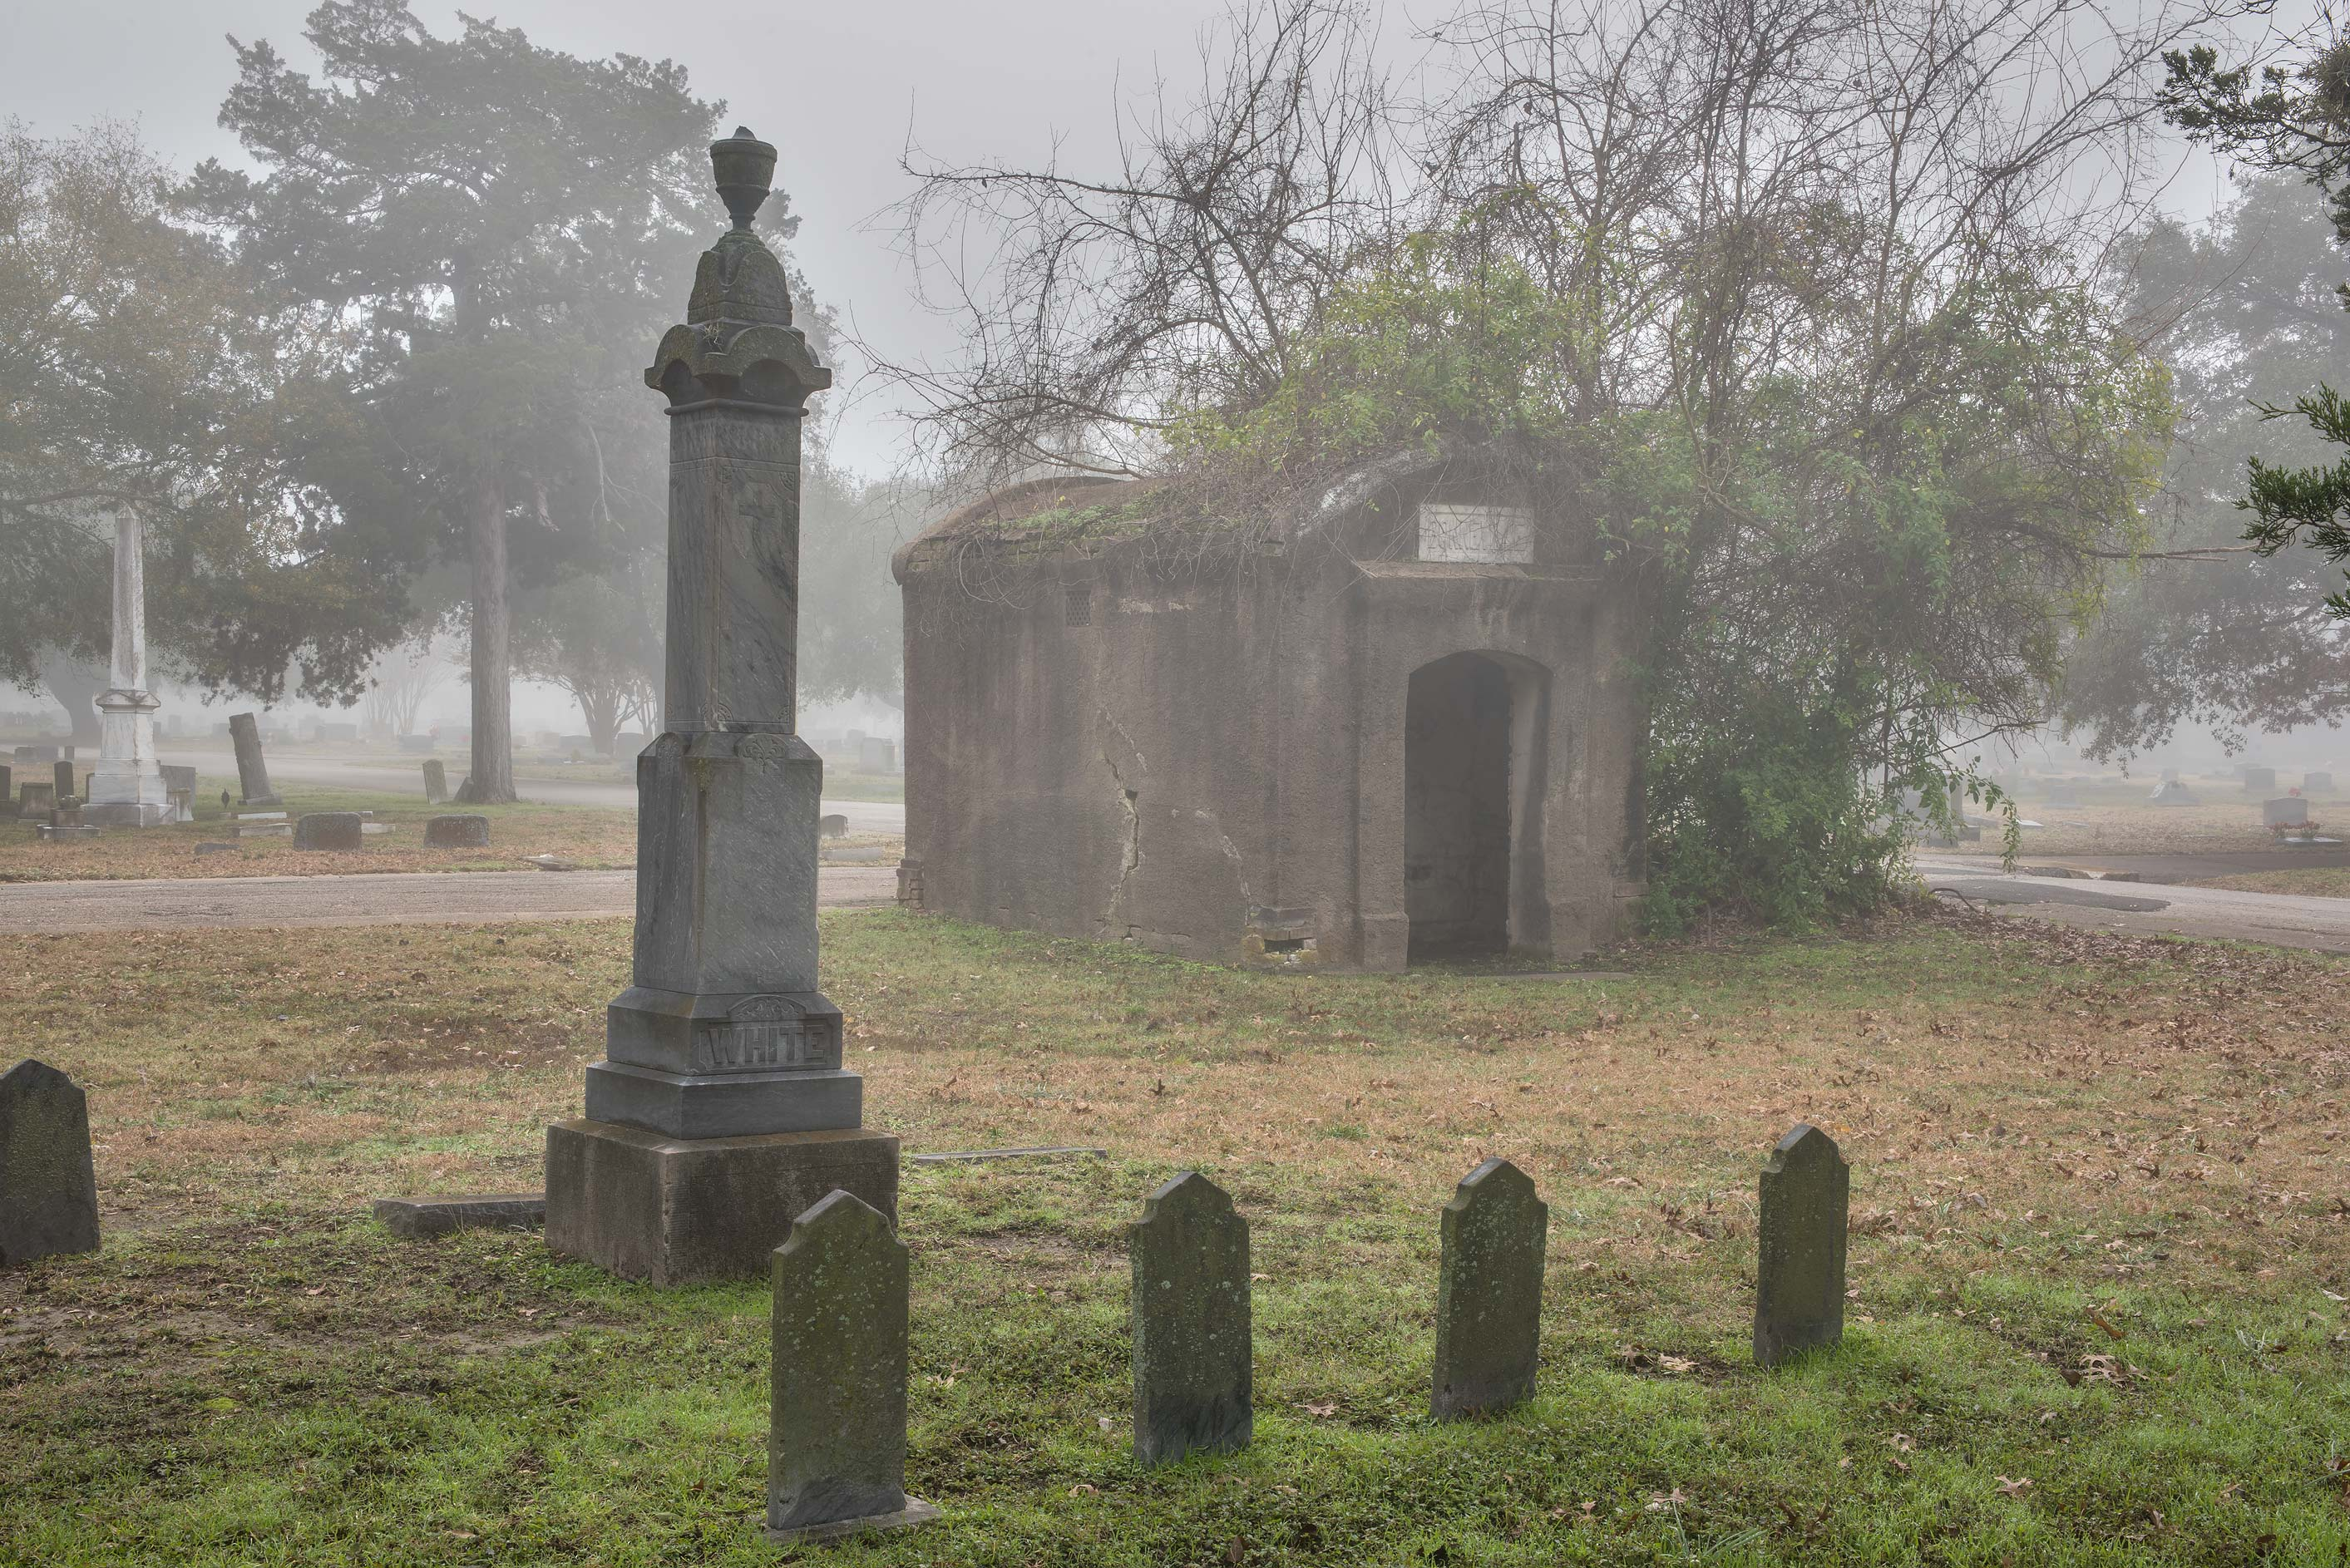 Tombs and a script in fog in City Cemetery. Bryan, Texas